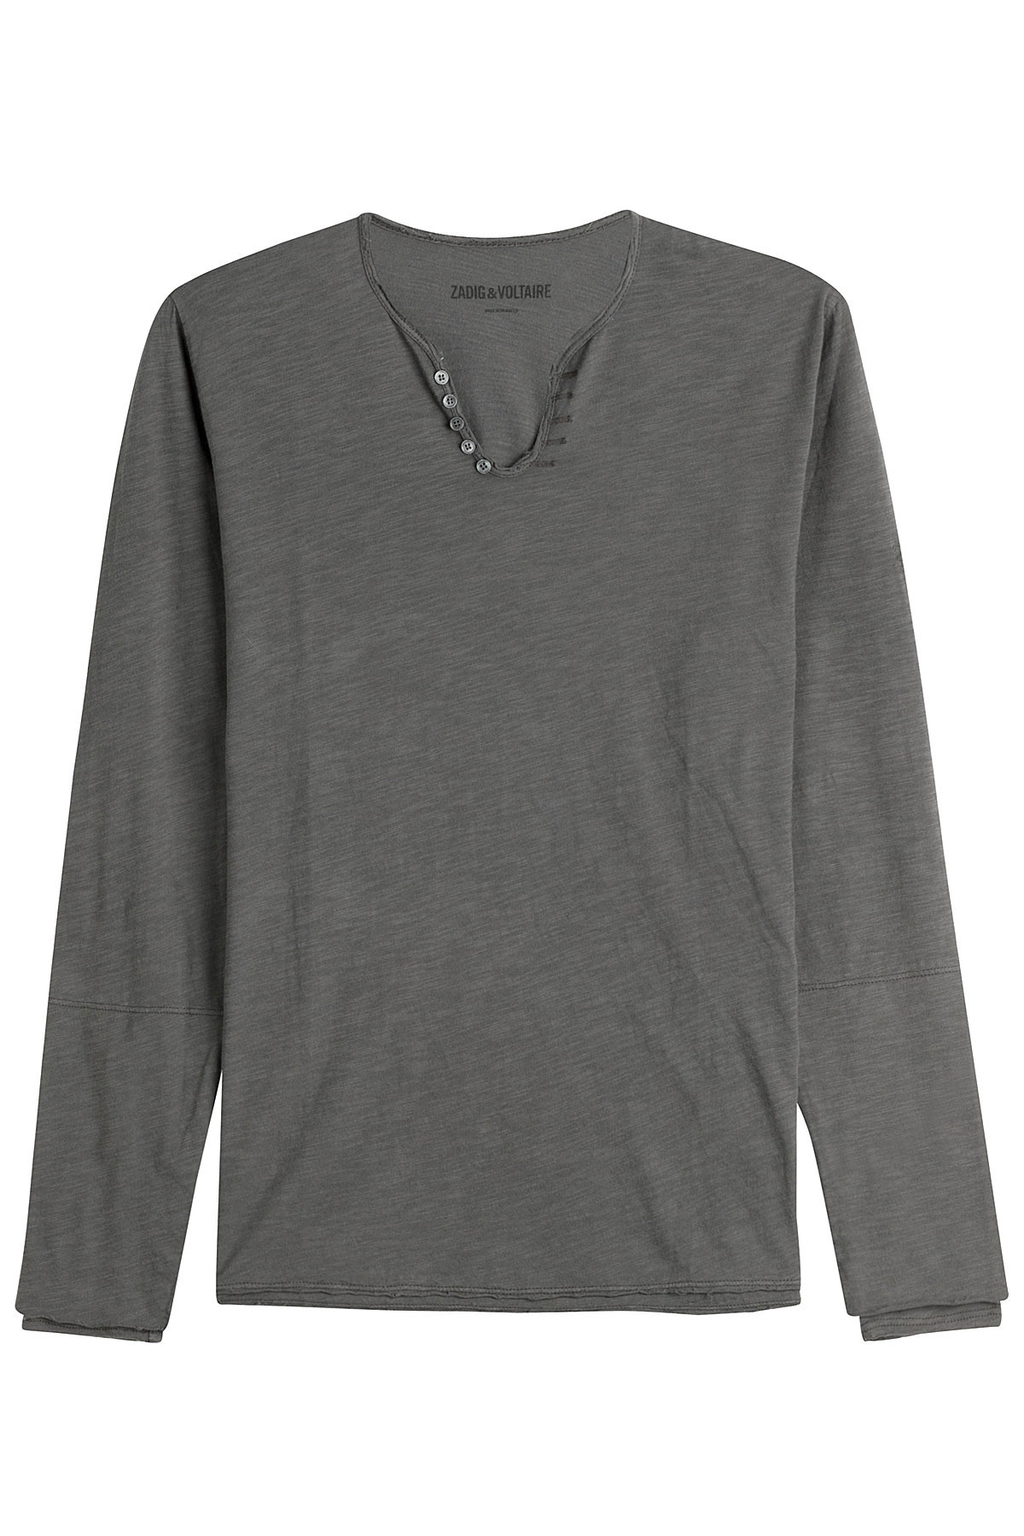 Nastir Light Slub Cotton Top - neckline: v-neck; pattern: plain; predominant colour: mid grey; occasions: casual; length: standard; style: top; fibres: cotton - 100%; fit: body skimming; sleeve length: long sleeve; sleeve style: standard; texture group: jersey - clingy; pattern type: fabric; season: s/s 2016; wardrobe: basic